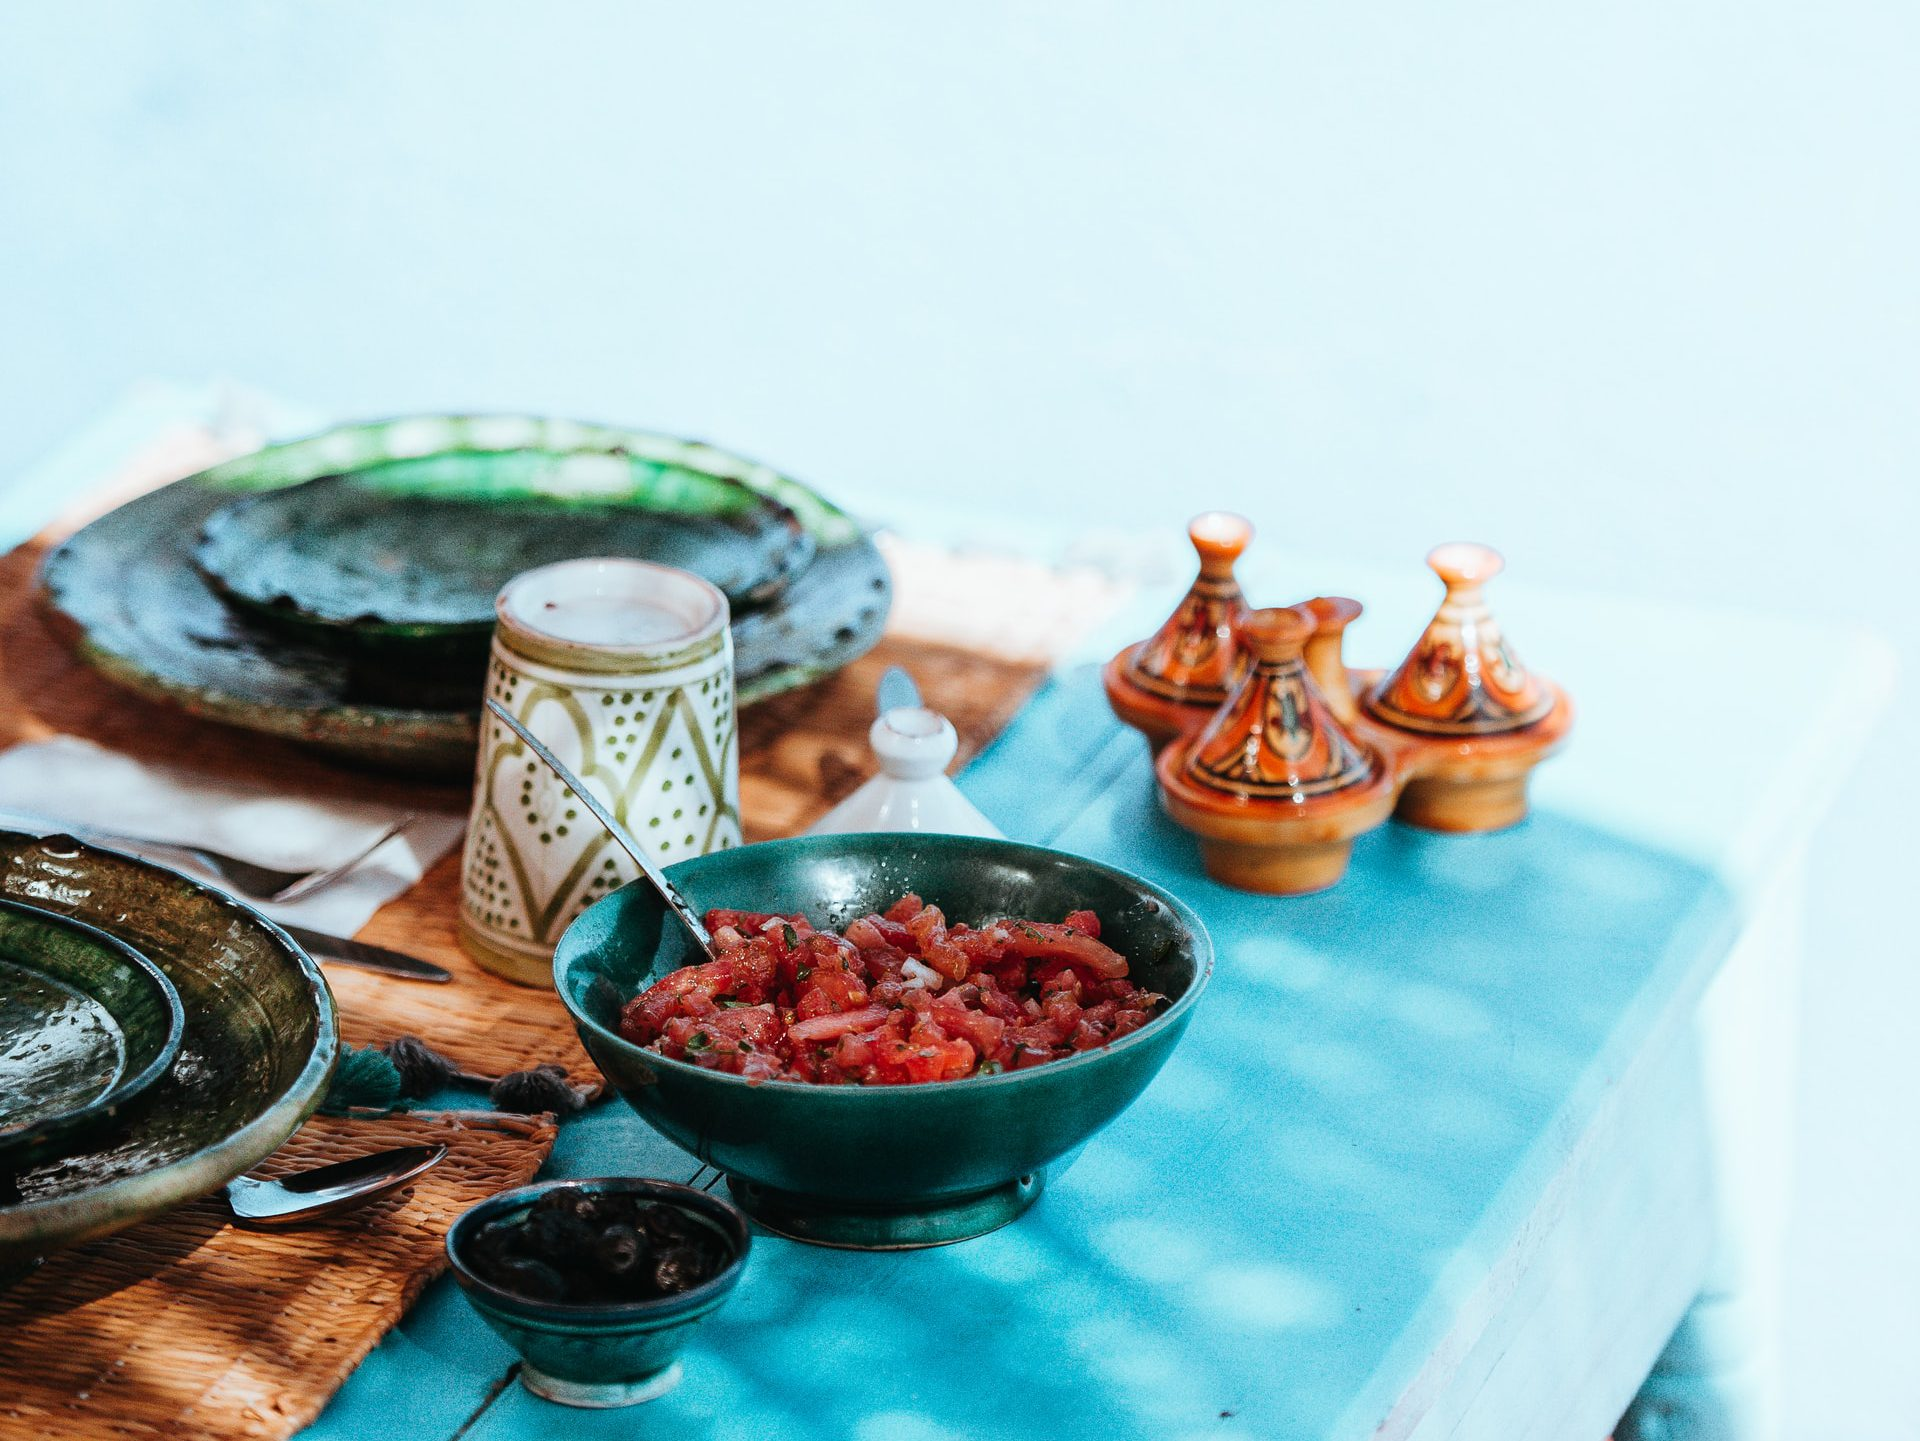 Morocco is a perfect place for starting your adventure with delicious cuisine